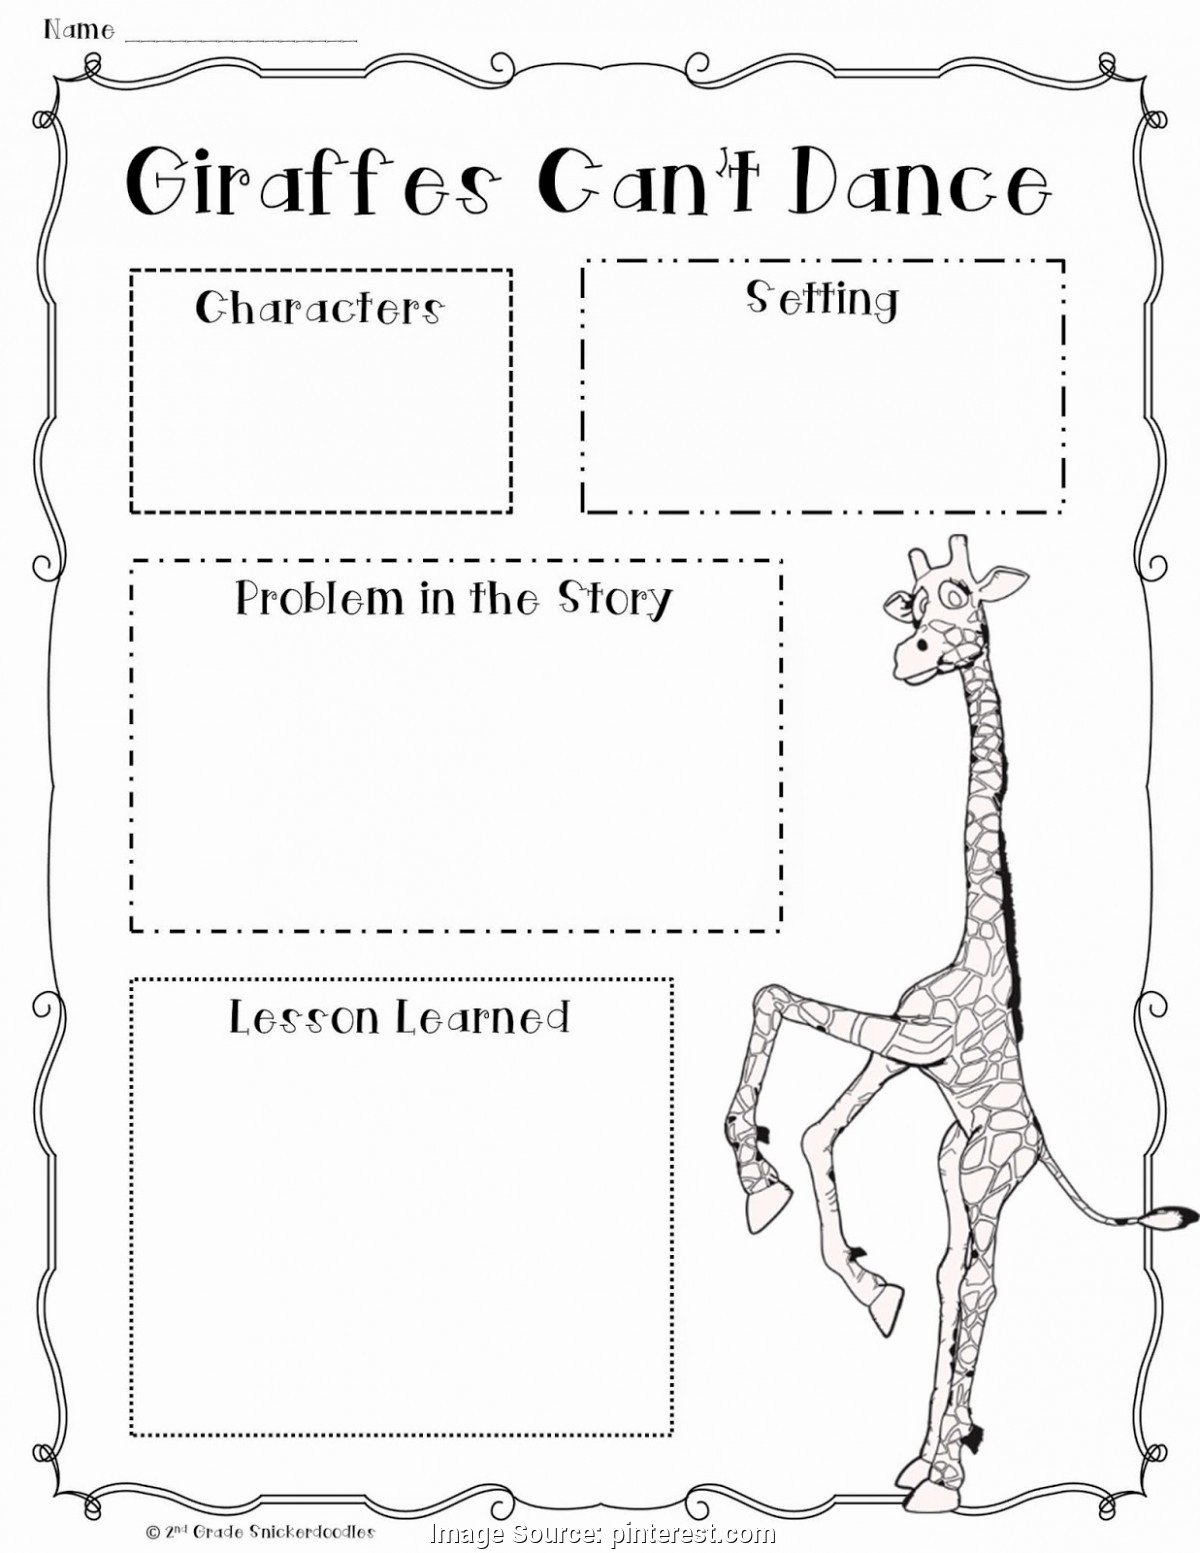 Dance Lesson Plan Template Awesome Interesting Lessons Learned Template 6 Project Management